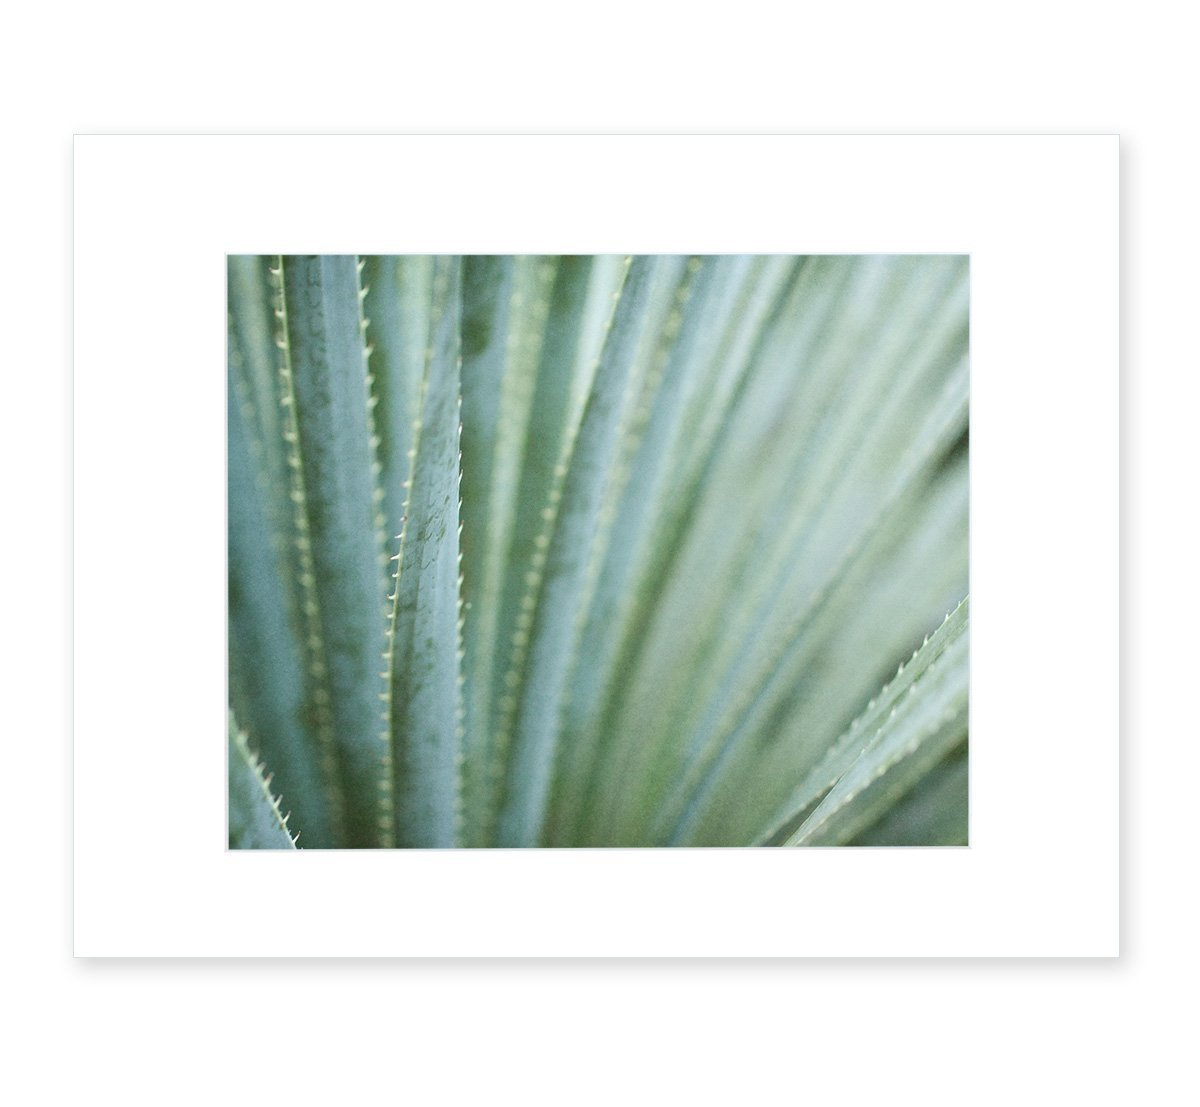 Abstract Green Botanical Wall Art, Modern Contemporary Wall Decor, 8x10 Matted Photographic Print (fits 11x14 frame), 'Strands and Spikes'